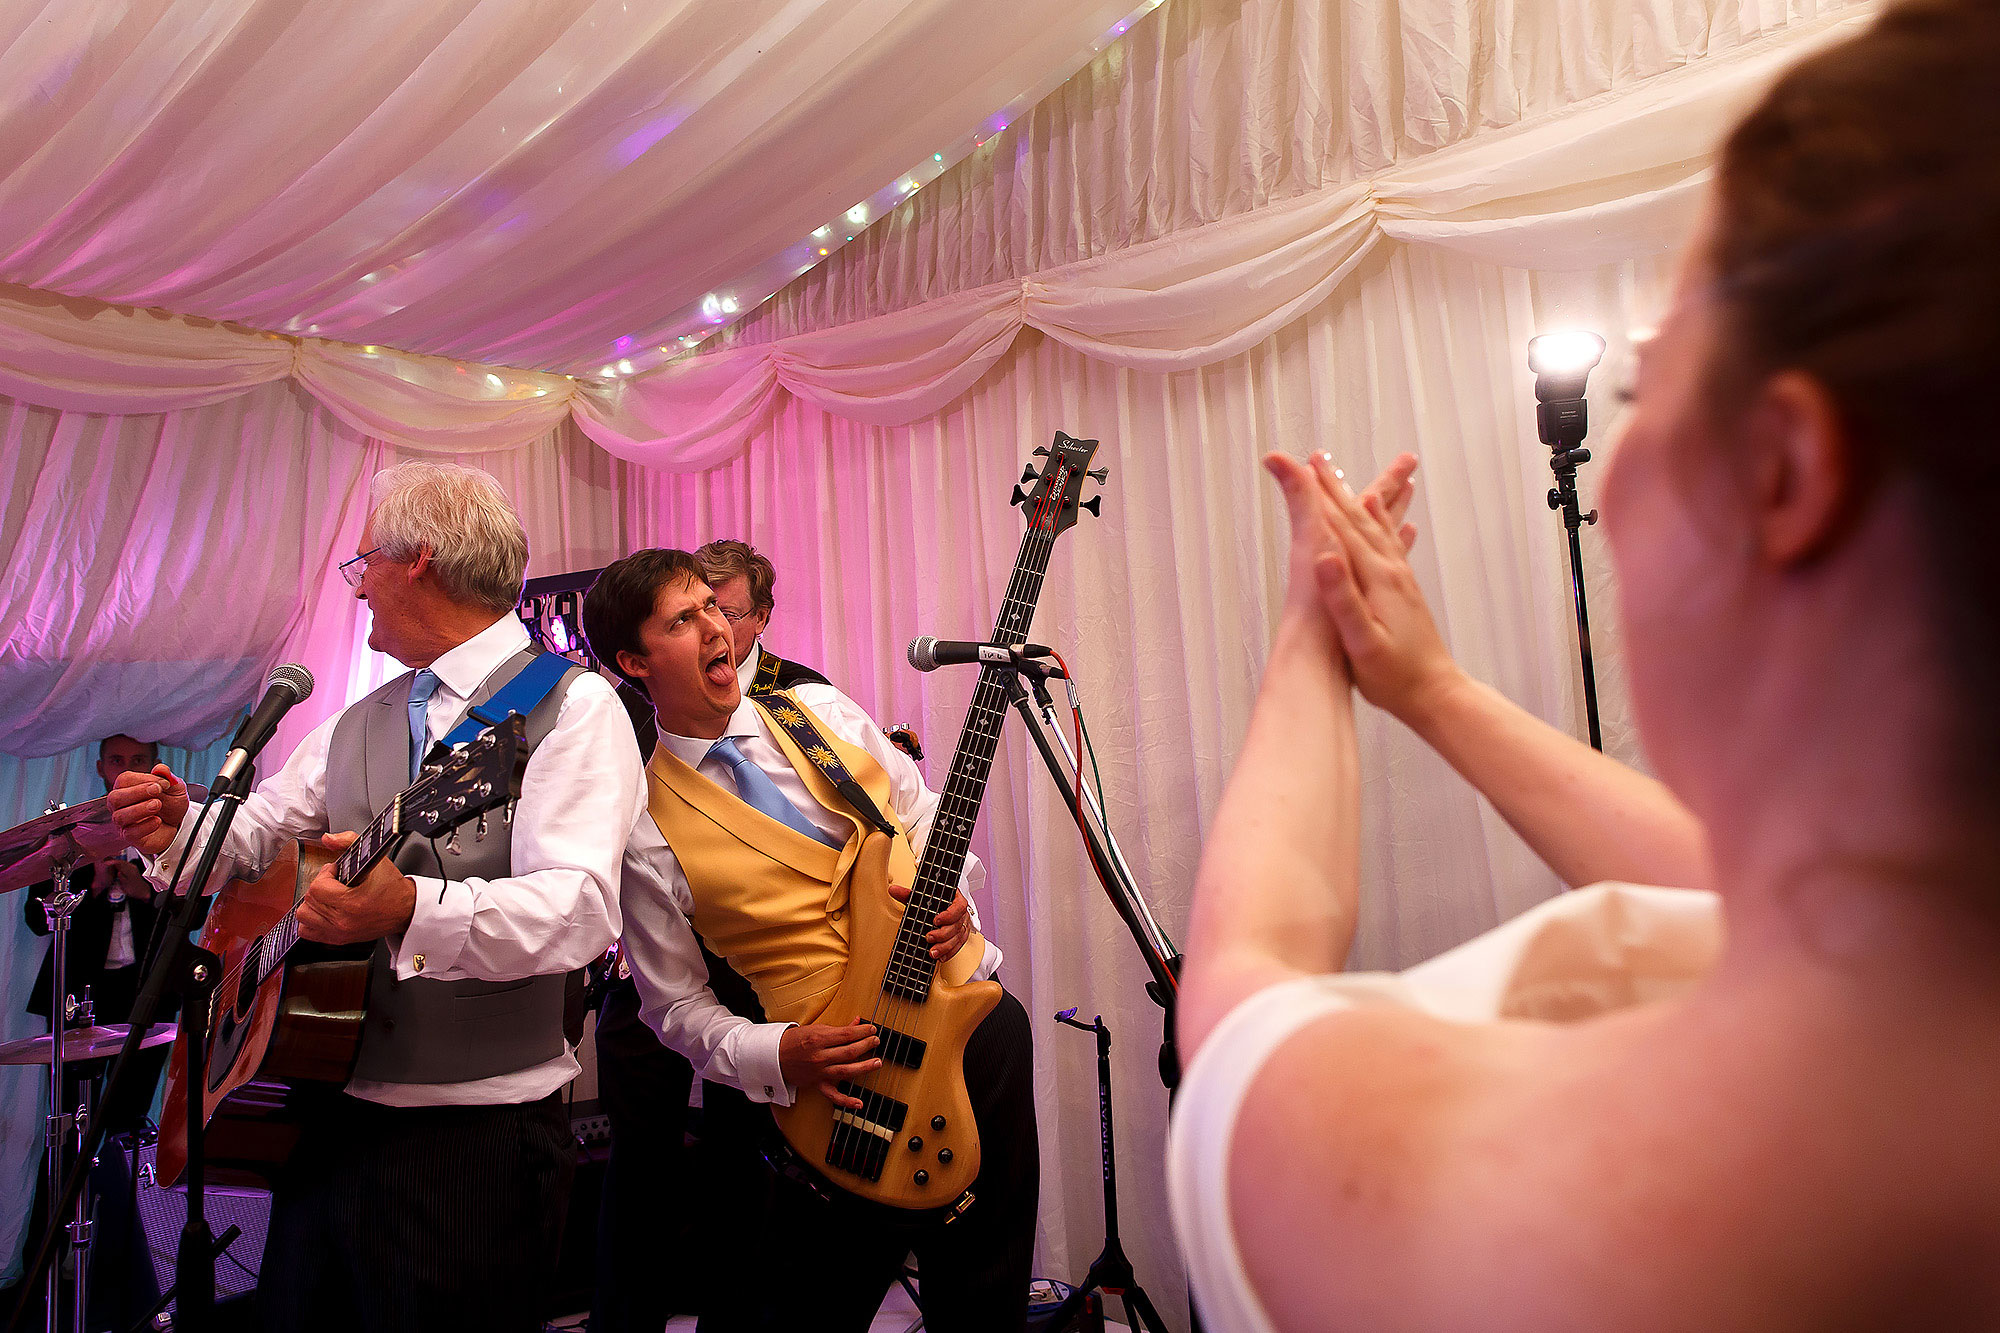 Groom playing the guitar with wedding band as the bride looks on clapping | Lake District Wedding by Toni Darcy Photography